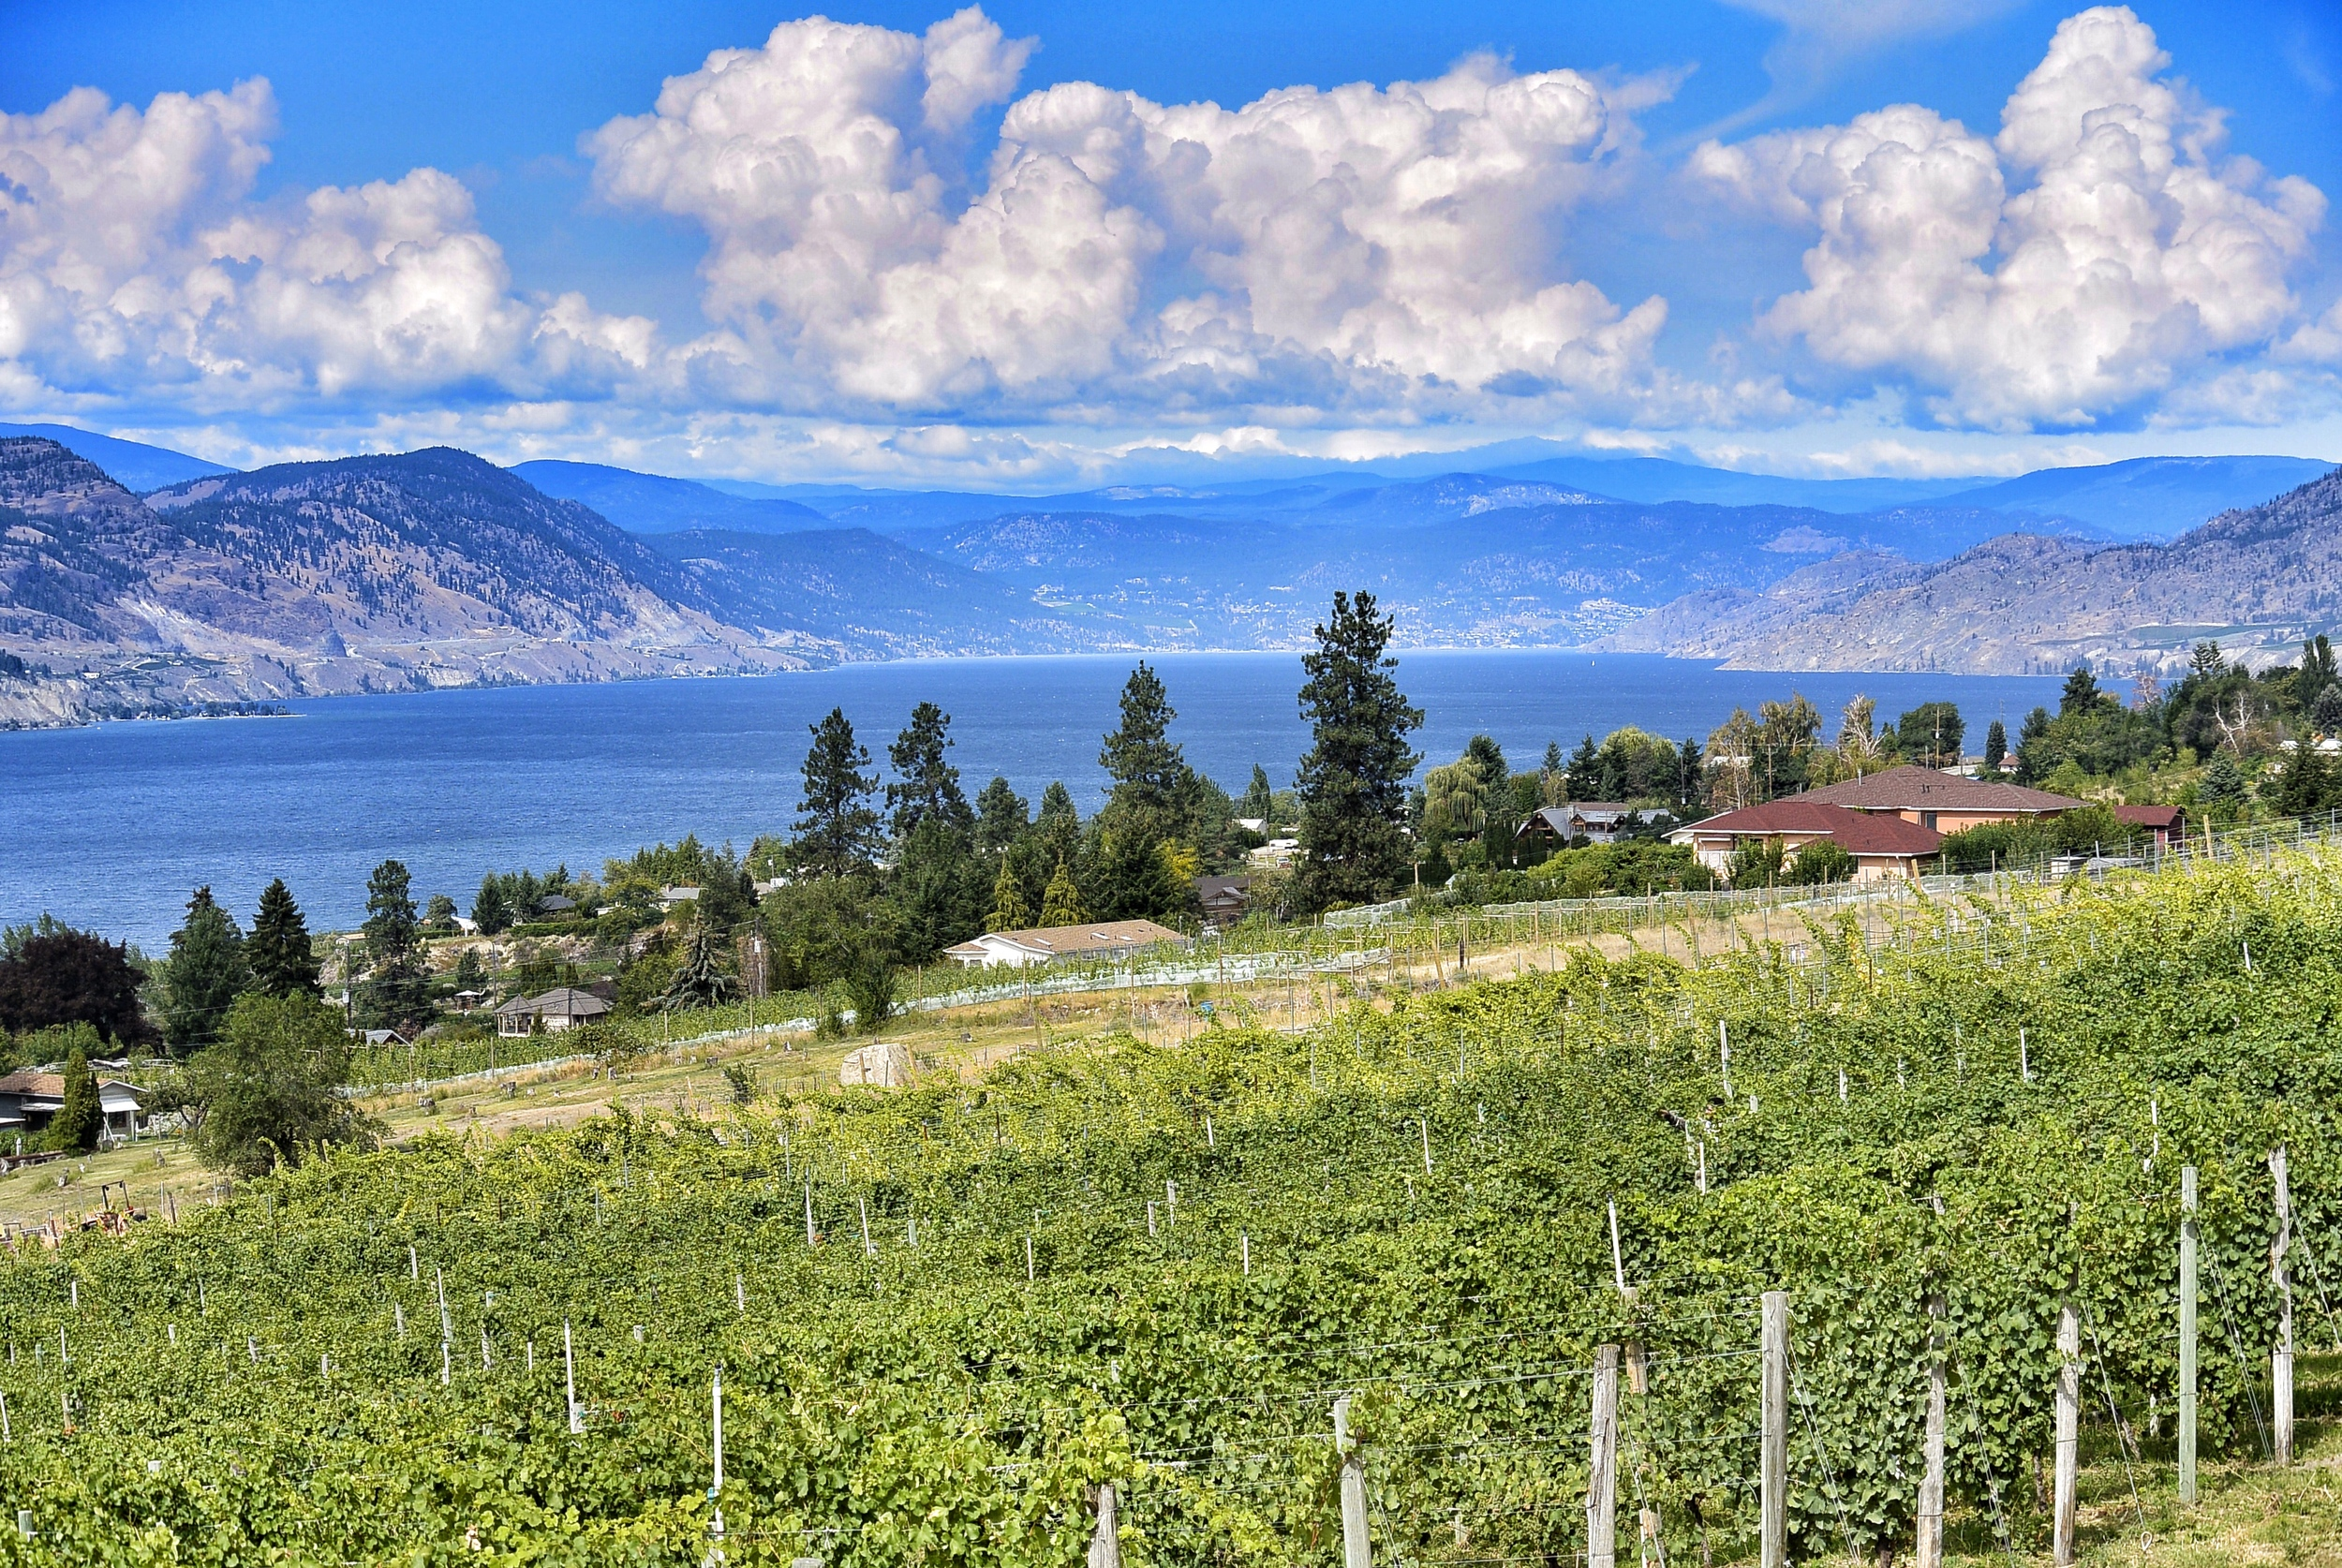 Naramata Bench winery views